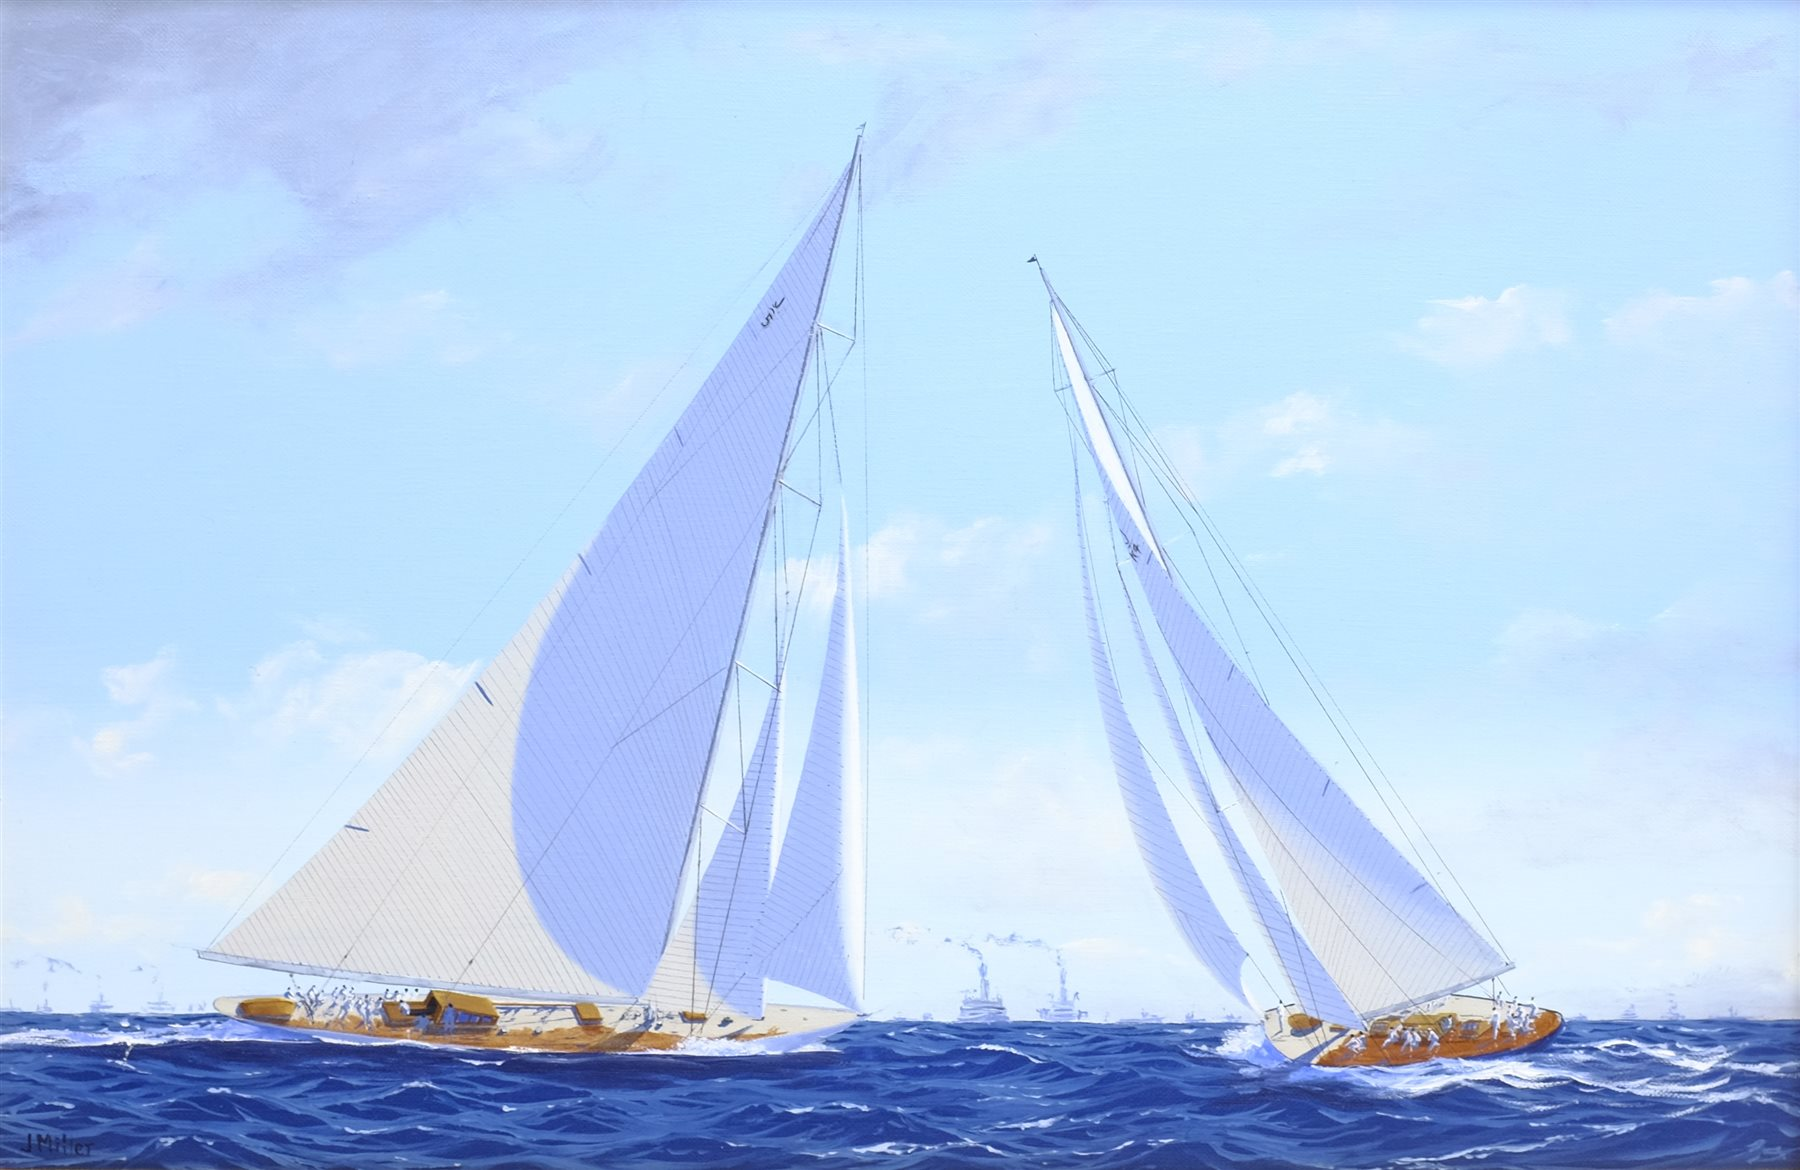 James Miller (British 1962-): 'Rainbow' & 'Endeavour' in the America's Cup Series 15th challenge 193 - Image 2 of 4